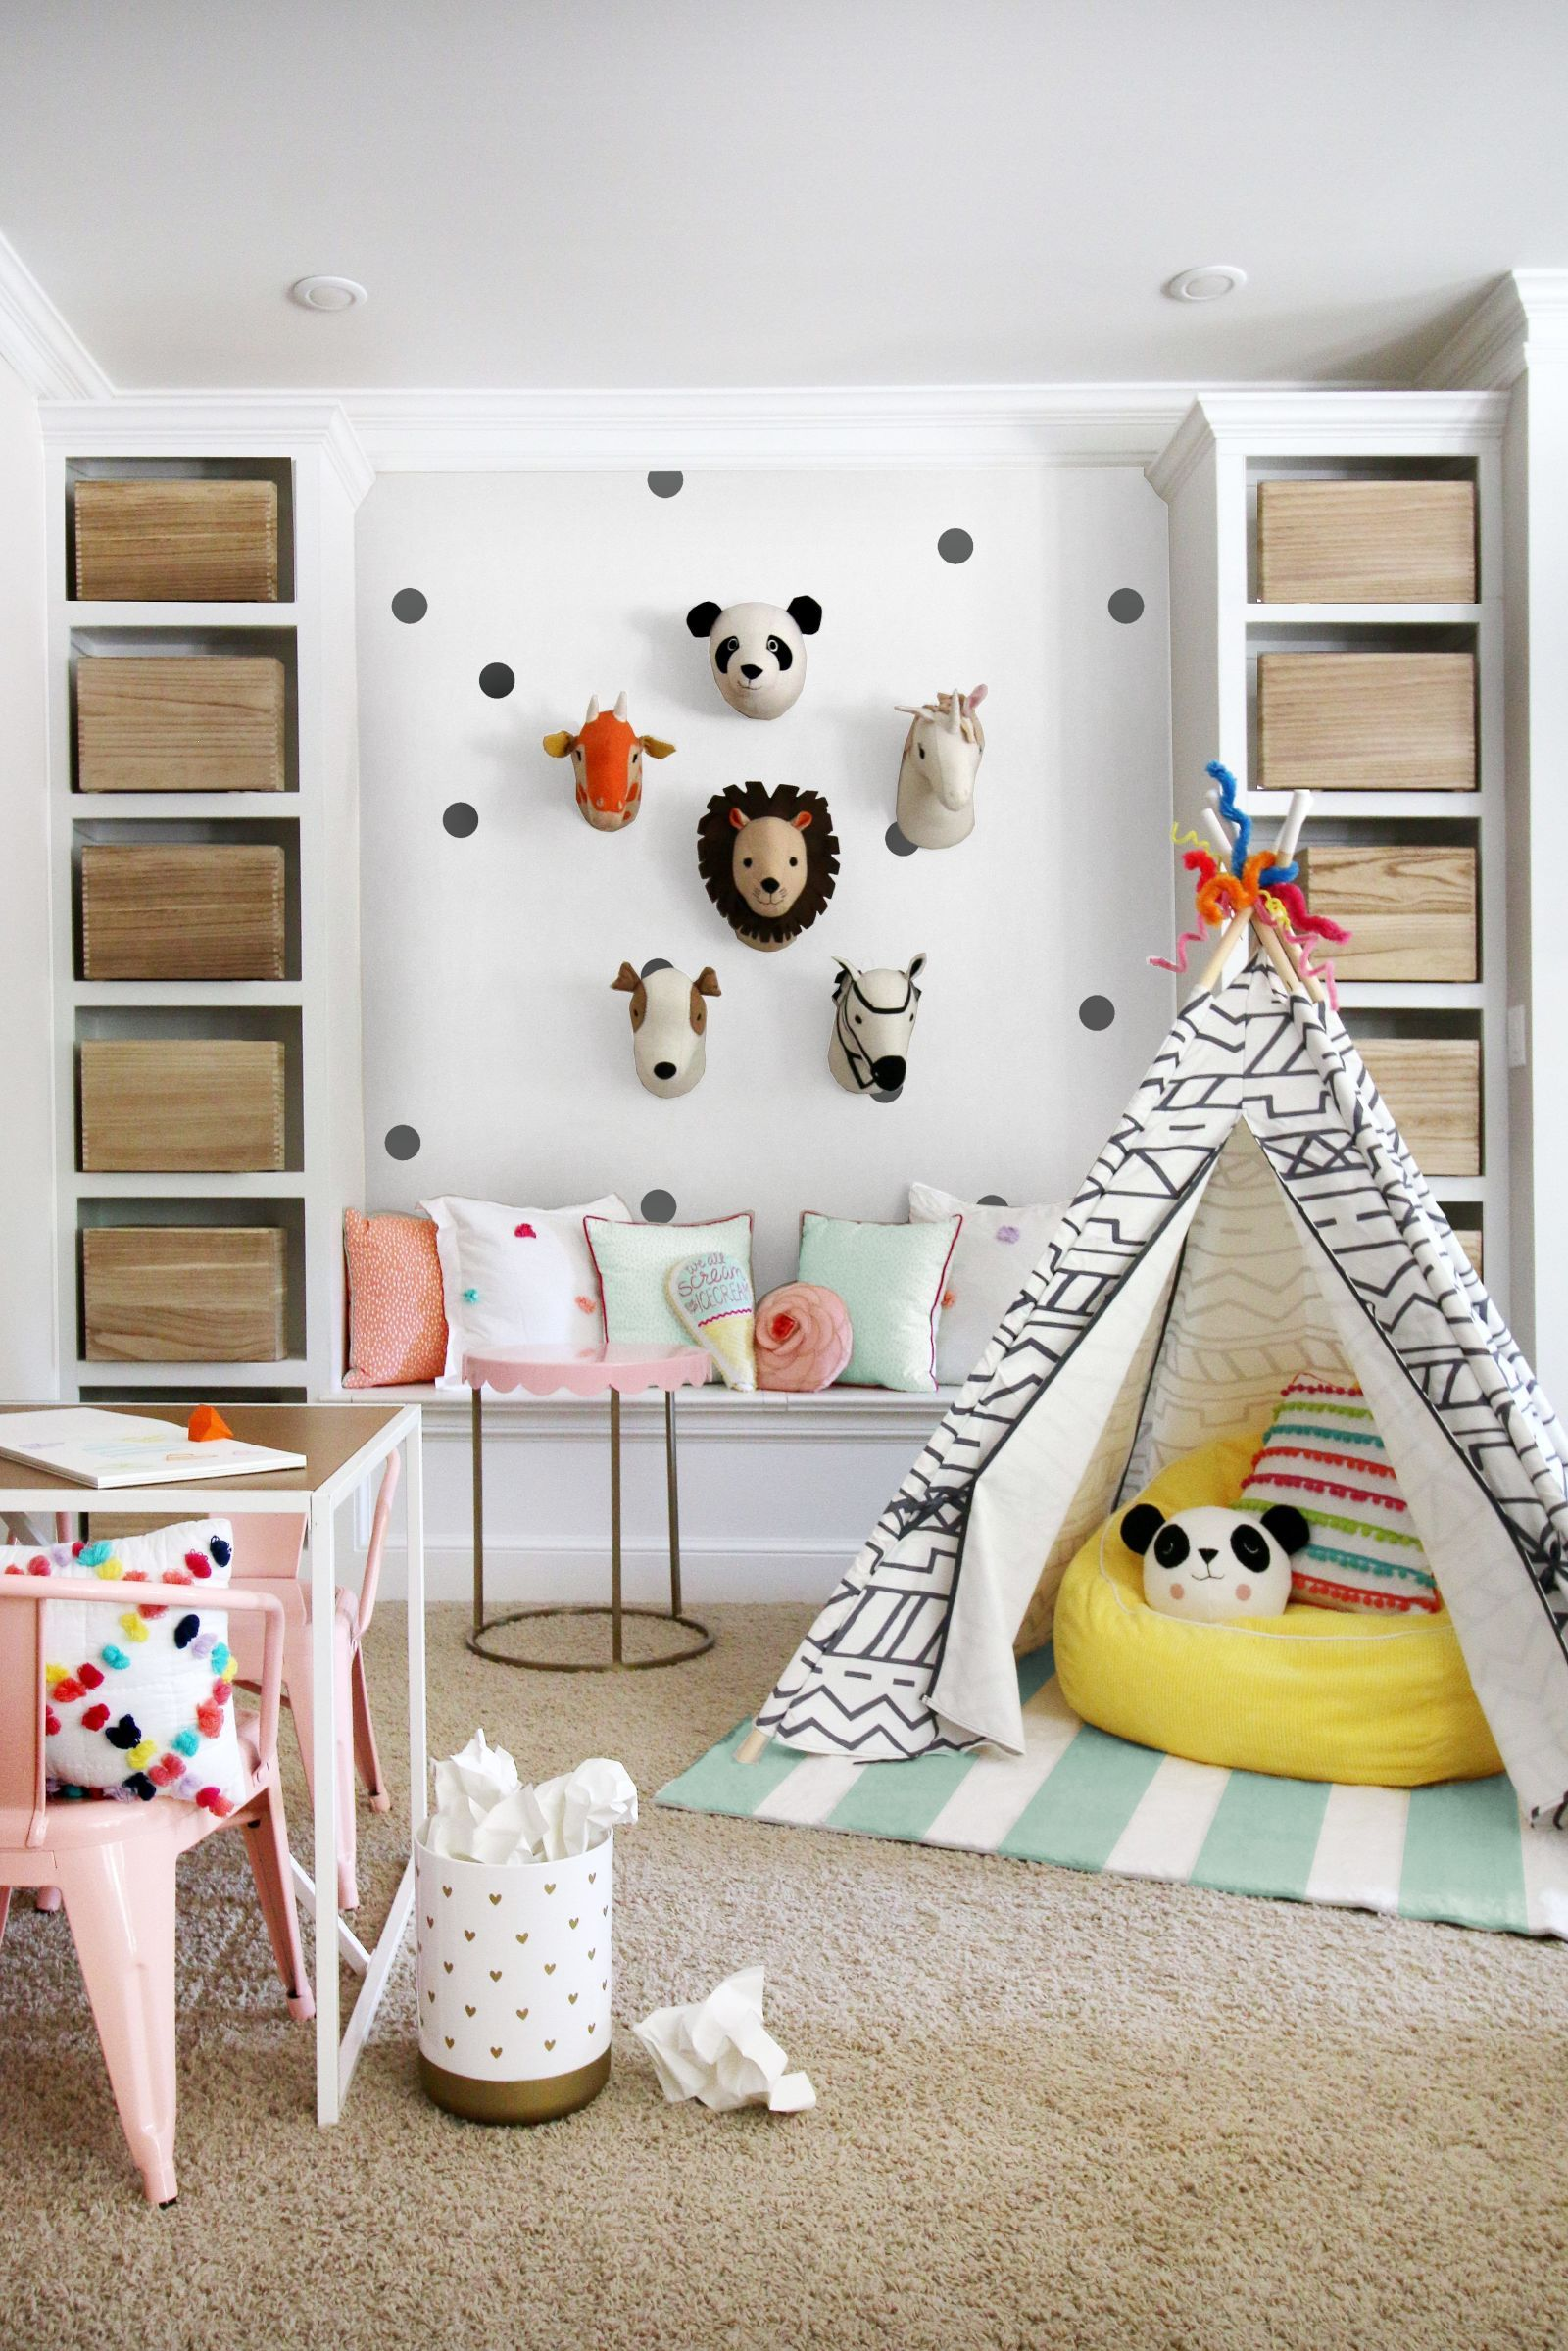 6 Totally Fresh Decorating Ideas For The Kids Playroom Kid Room Decor Playroom Decor Playroom Design